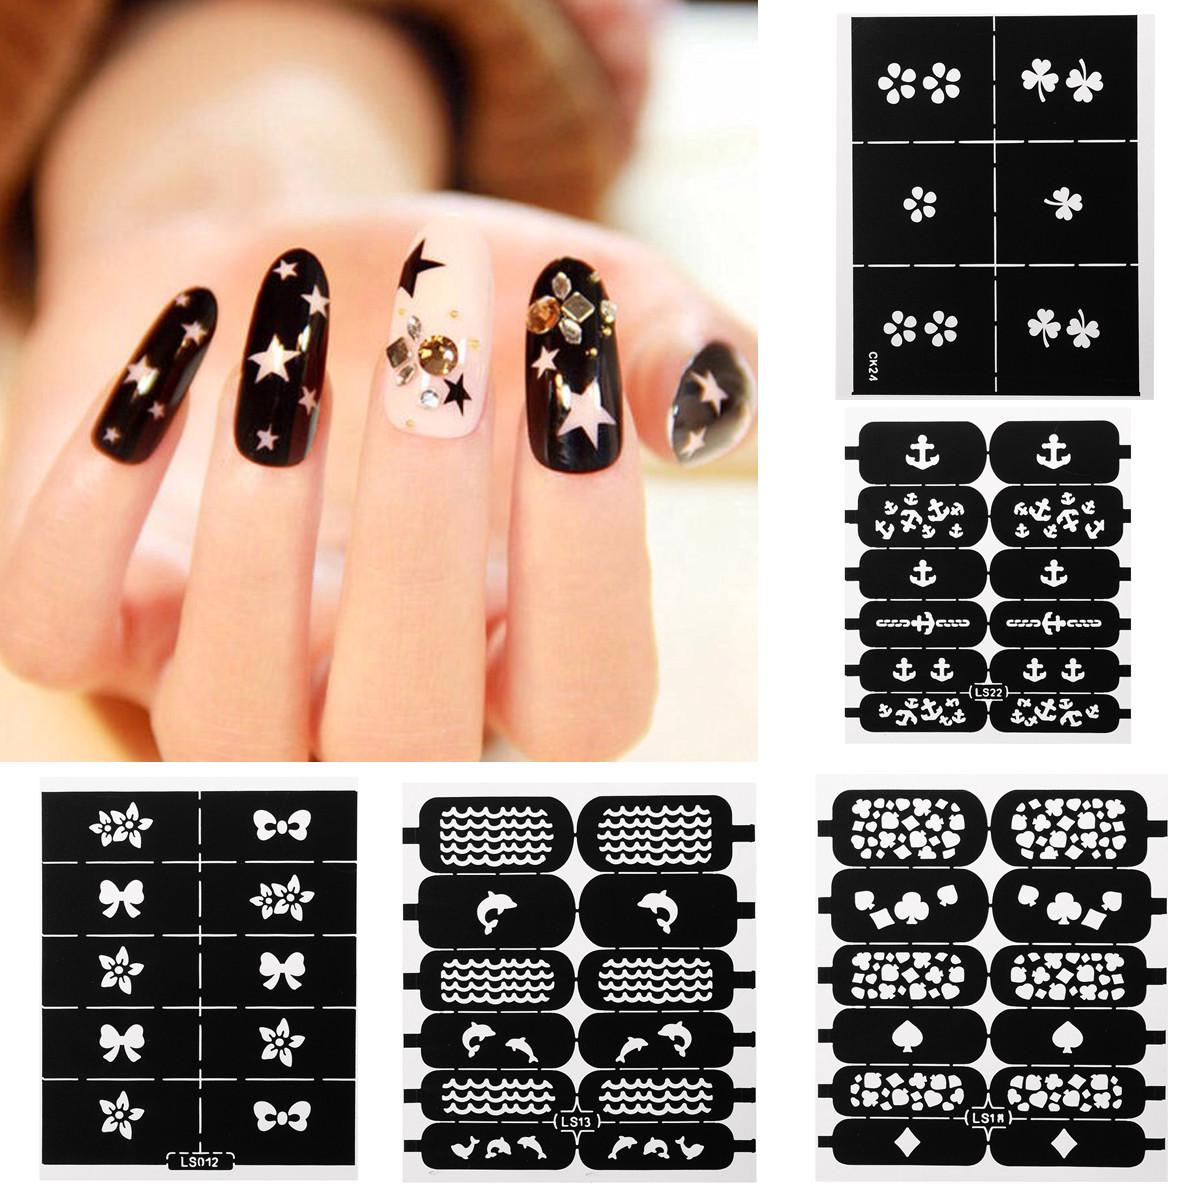 1 Sheet Nail Art Stencil Vinyls Stamp Stickers Decals Image DIY Manicure,LS002 color